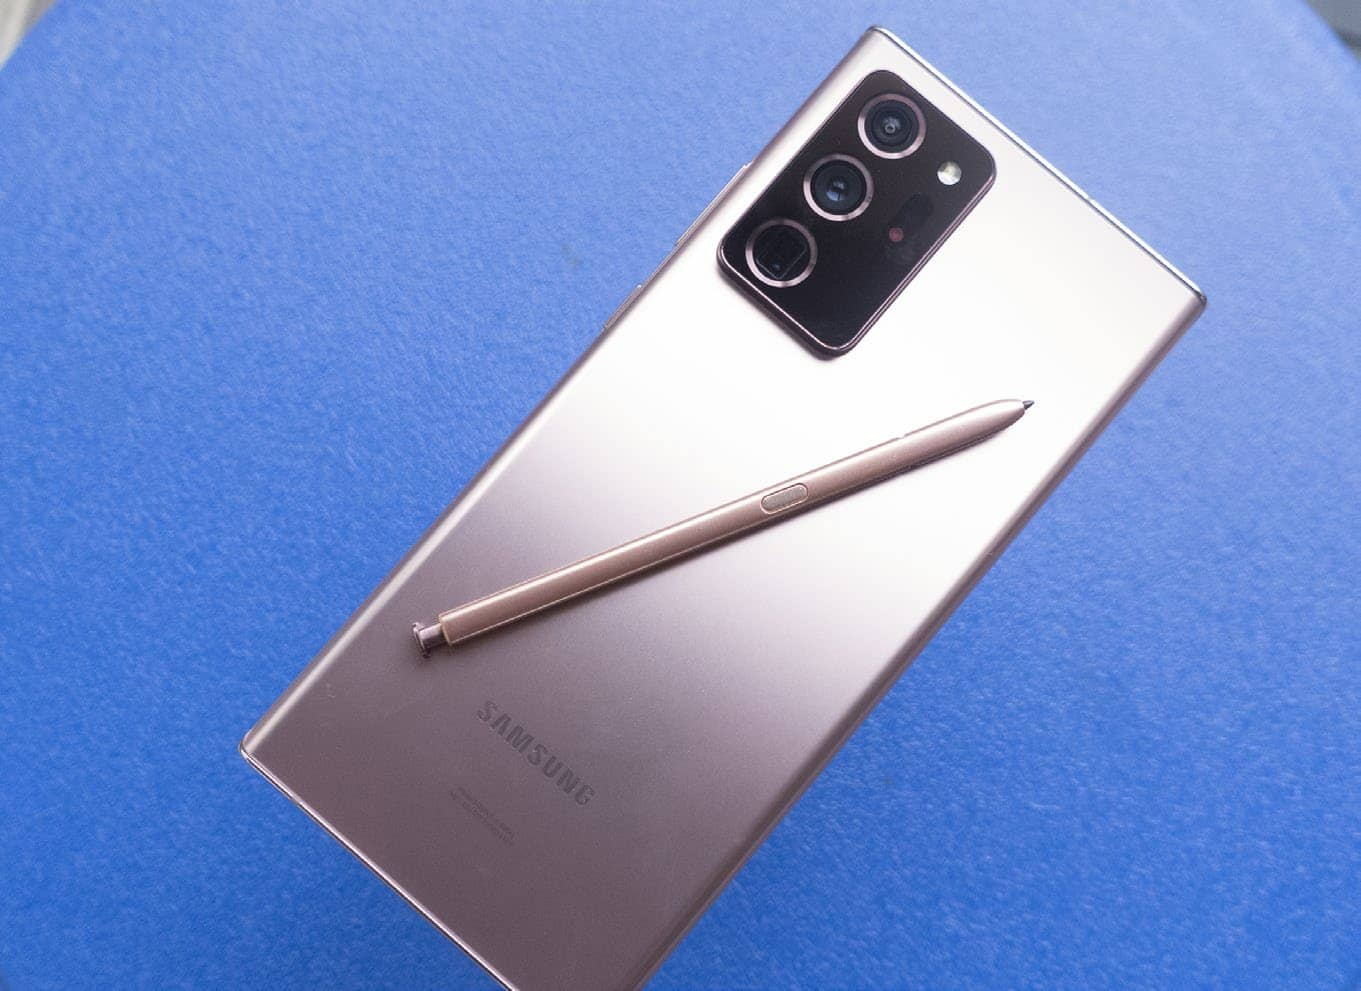 Samsung Galaxy Note 20 Ultra: A love note to Note lovers